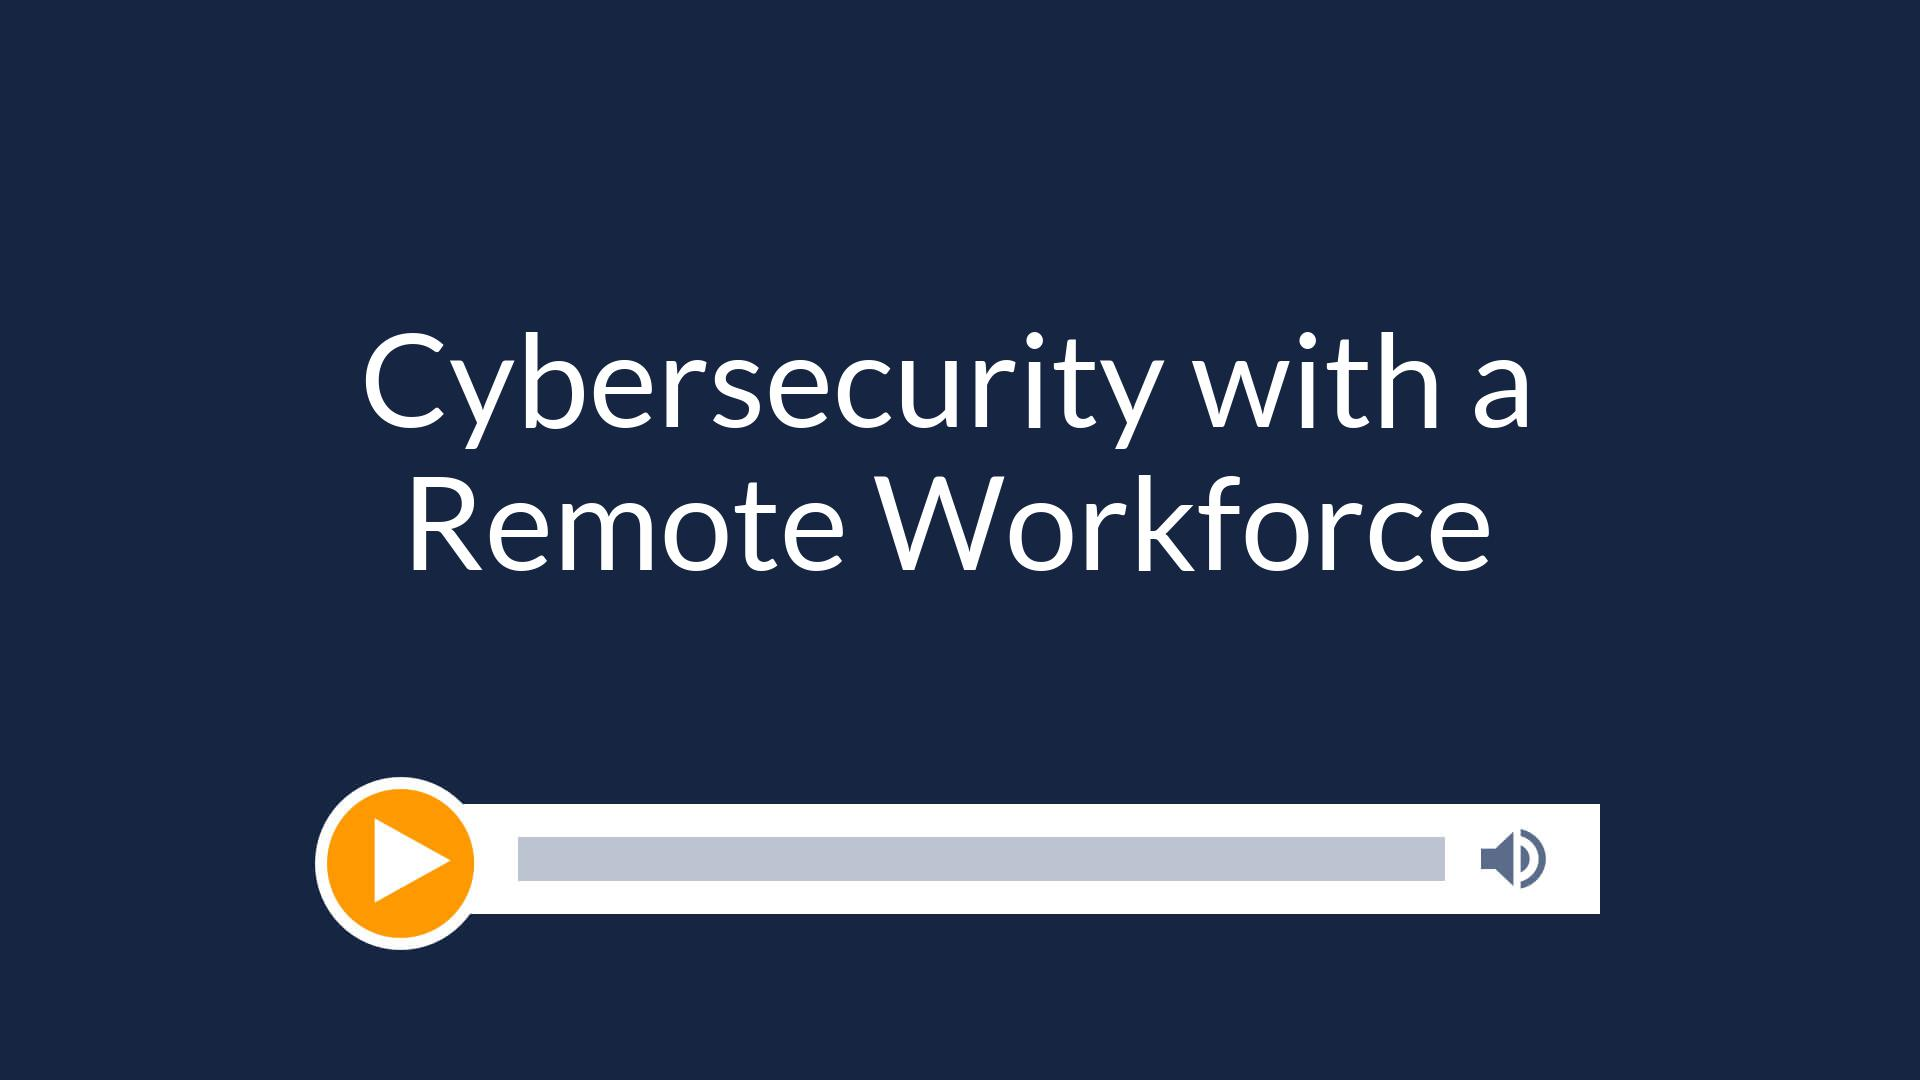 Cybersecurity with a Remote Workforce